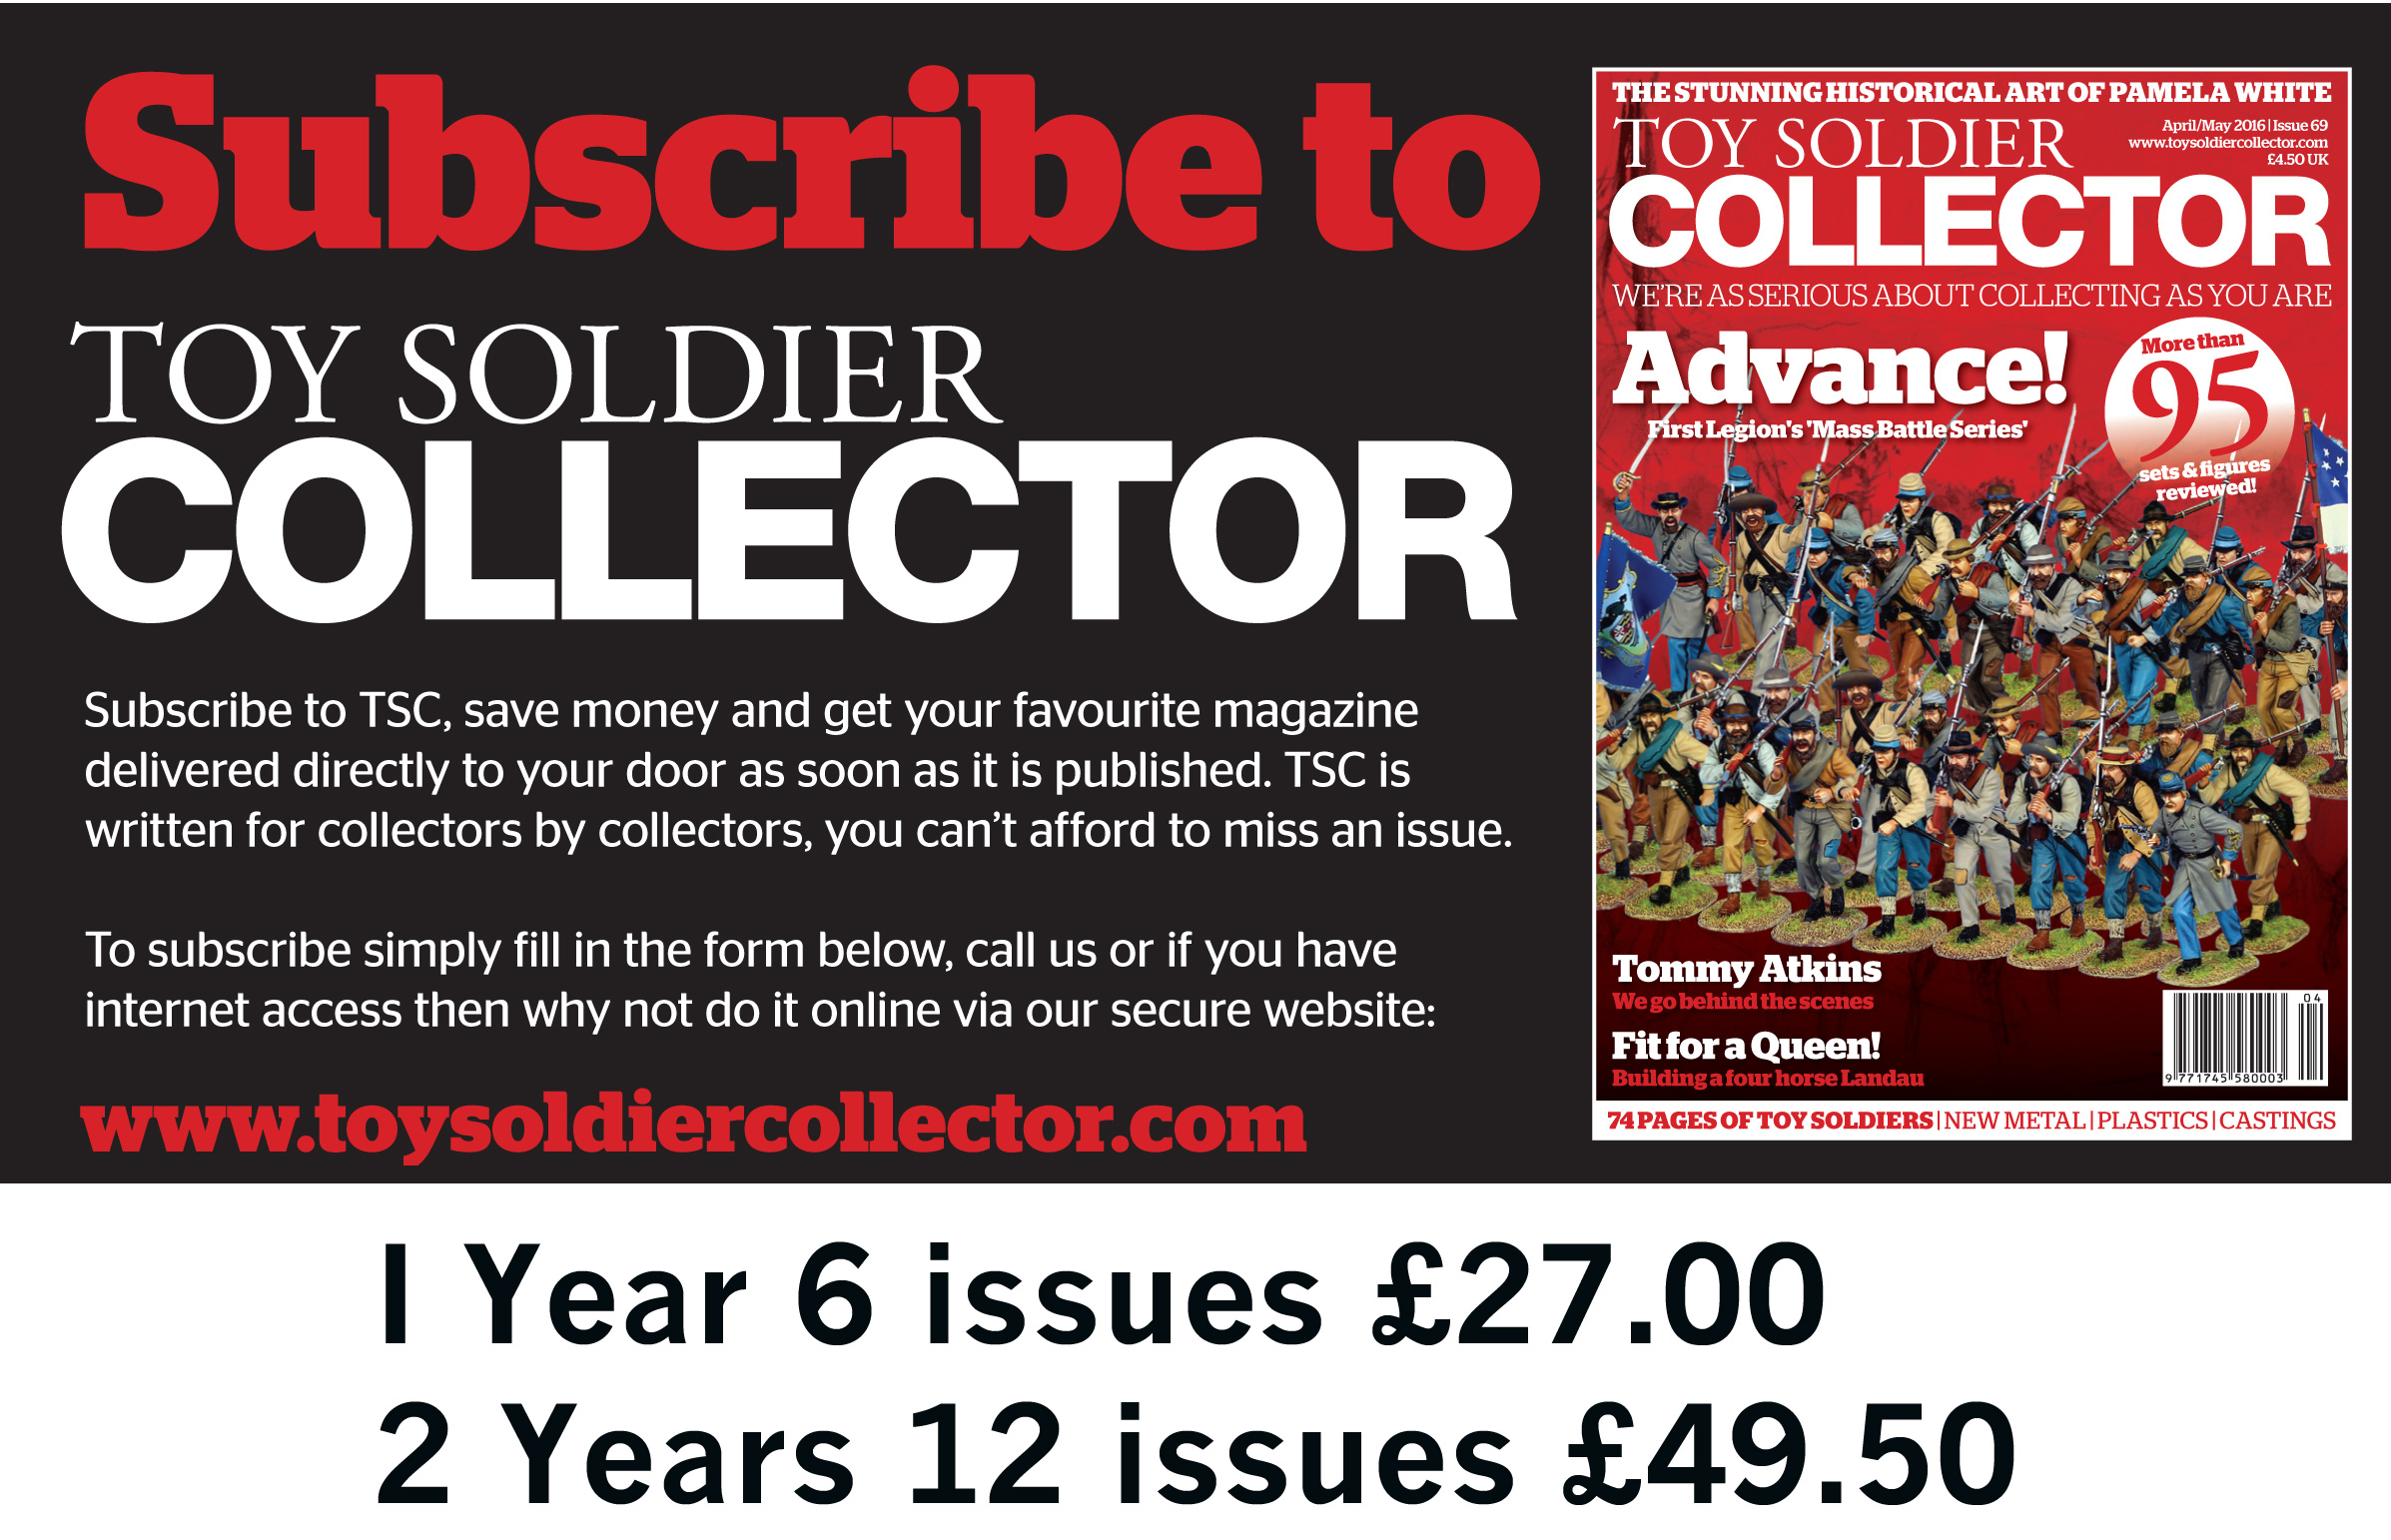 Guideline Publications Toy Soldier Collector - 2 Years (12 Issues) Subscription